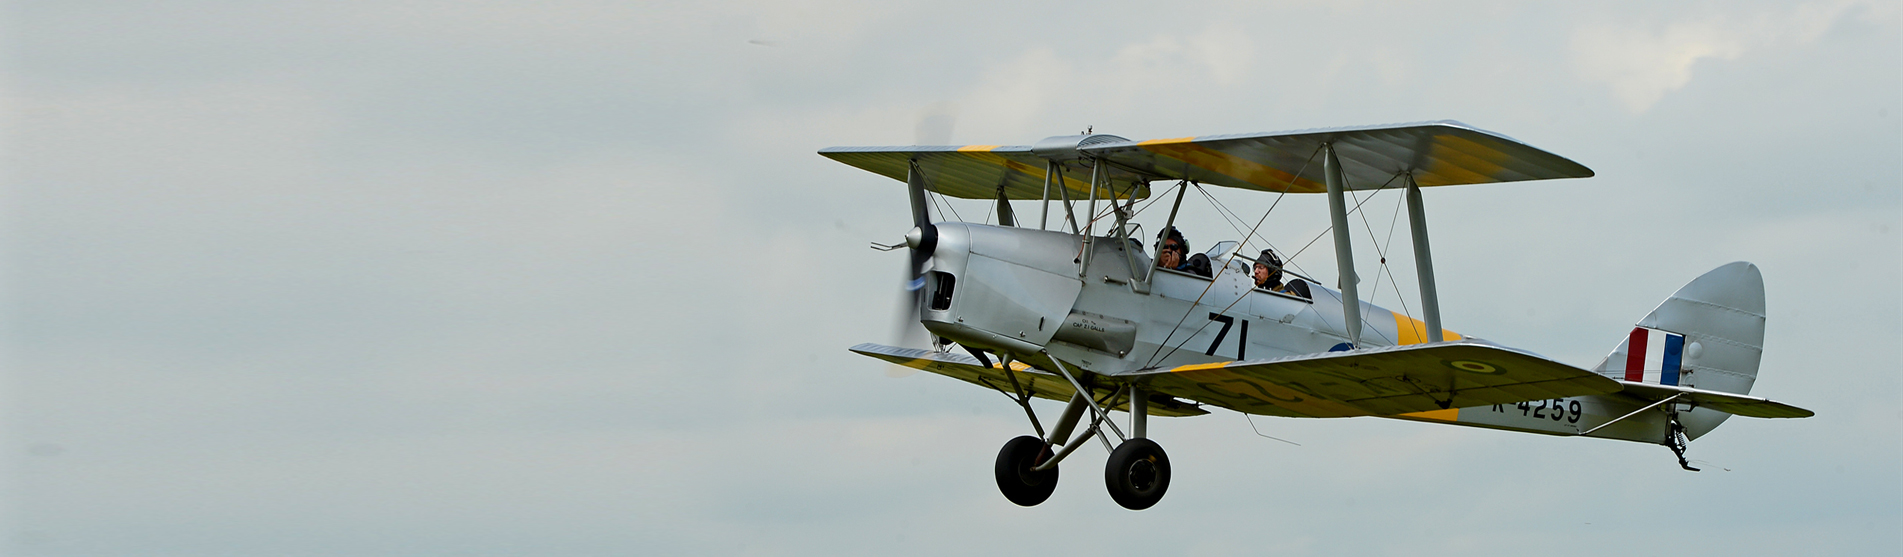 Tiger-Moth-Flights-BanR-Foo